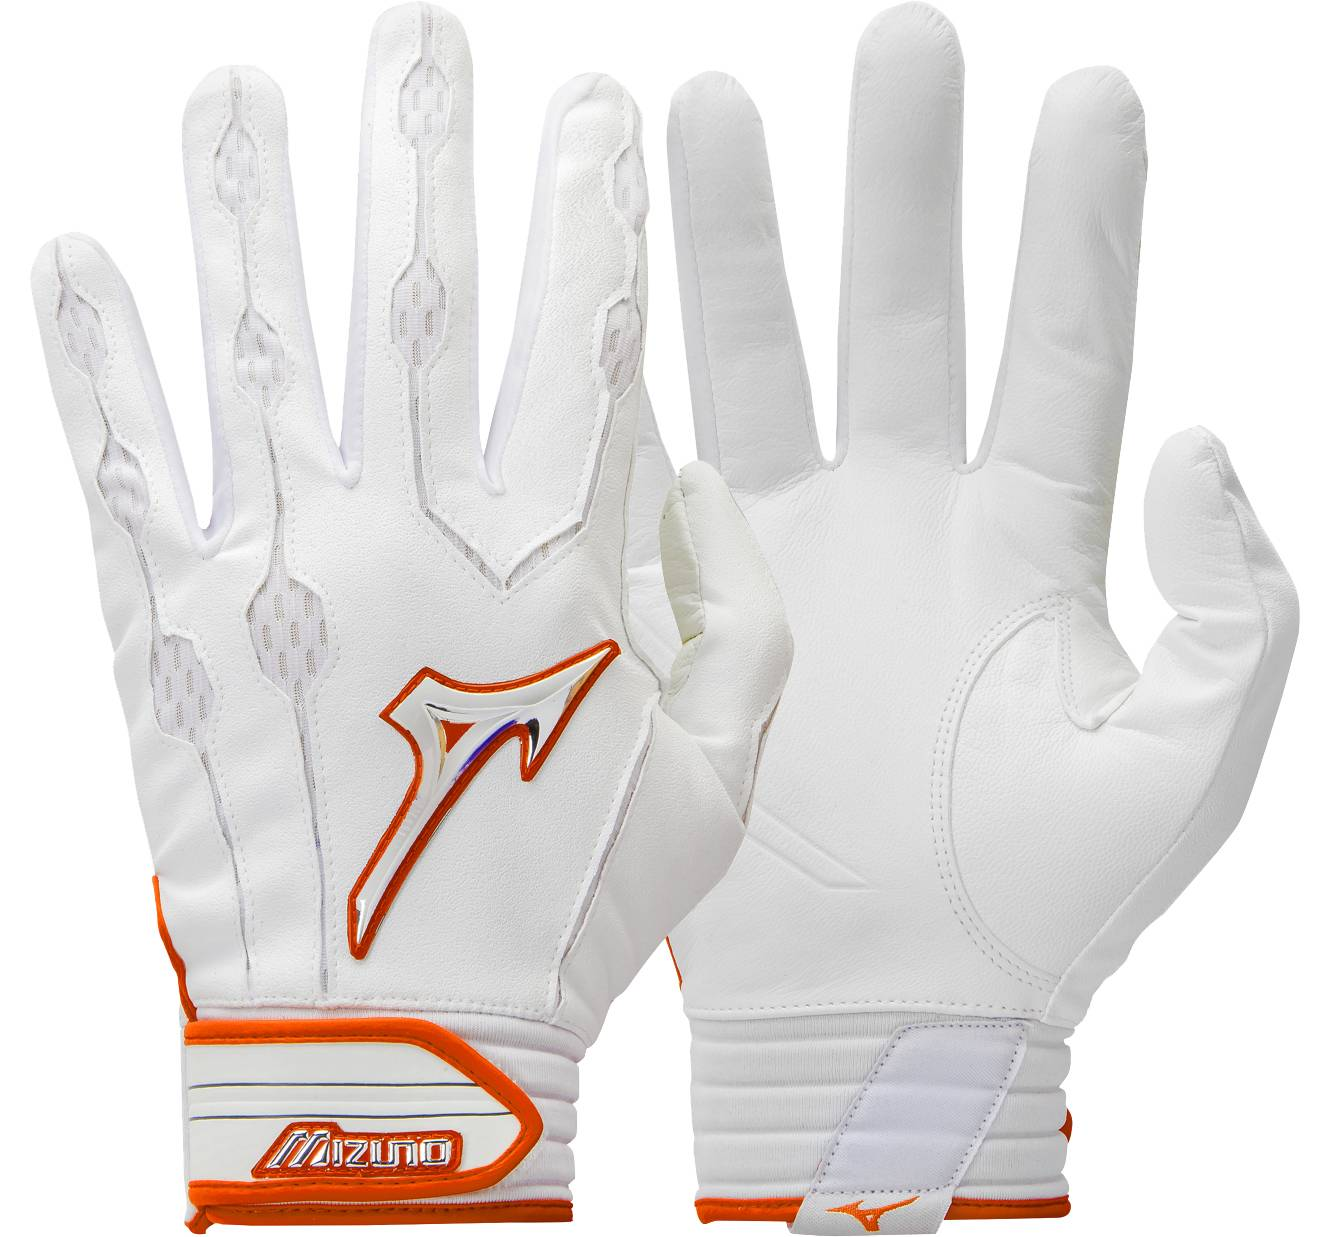 parashock batting gloves